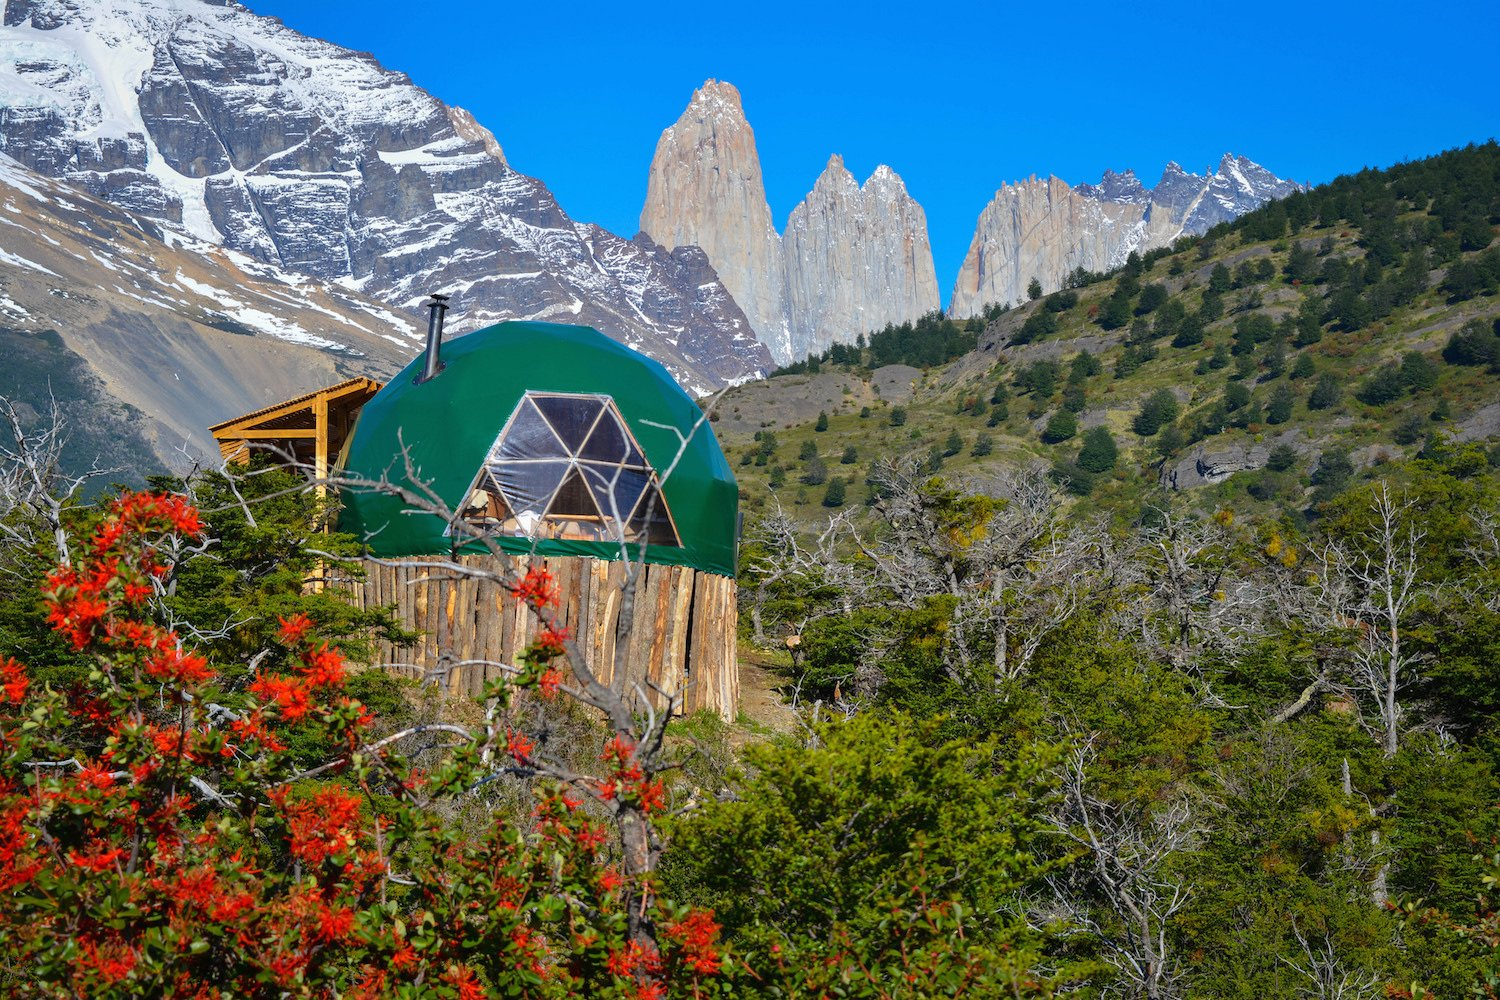 Exterior, Dome, Wood, and Tent  Best Exterior Wood Tent Photos from Soak Up the Magic of Patagonia at This Eco-Friendly Geodesic Dome Retreat